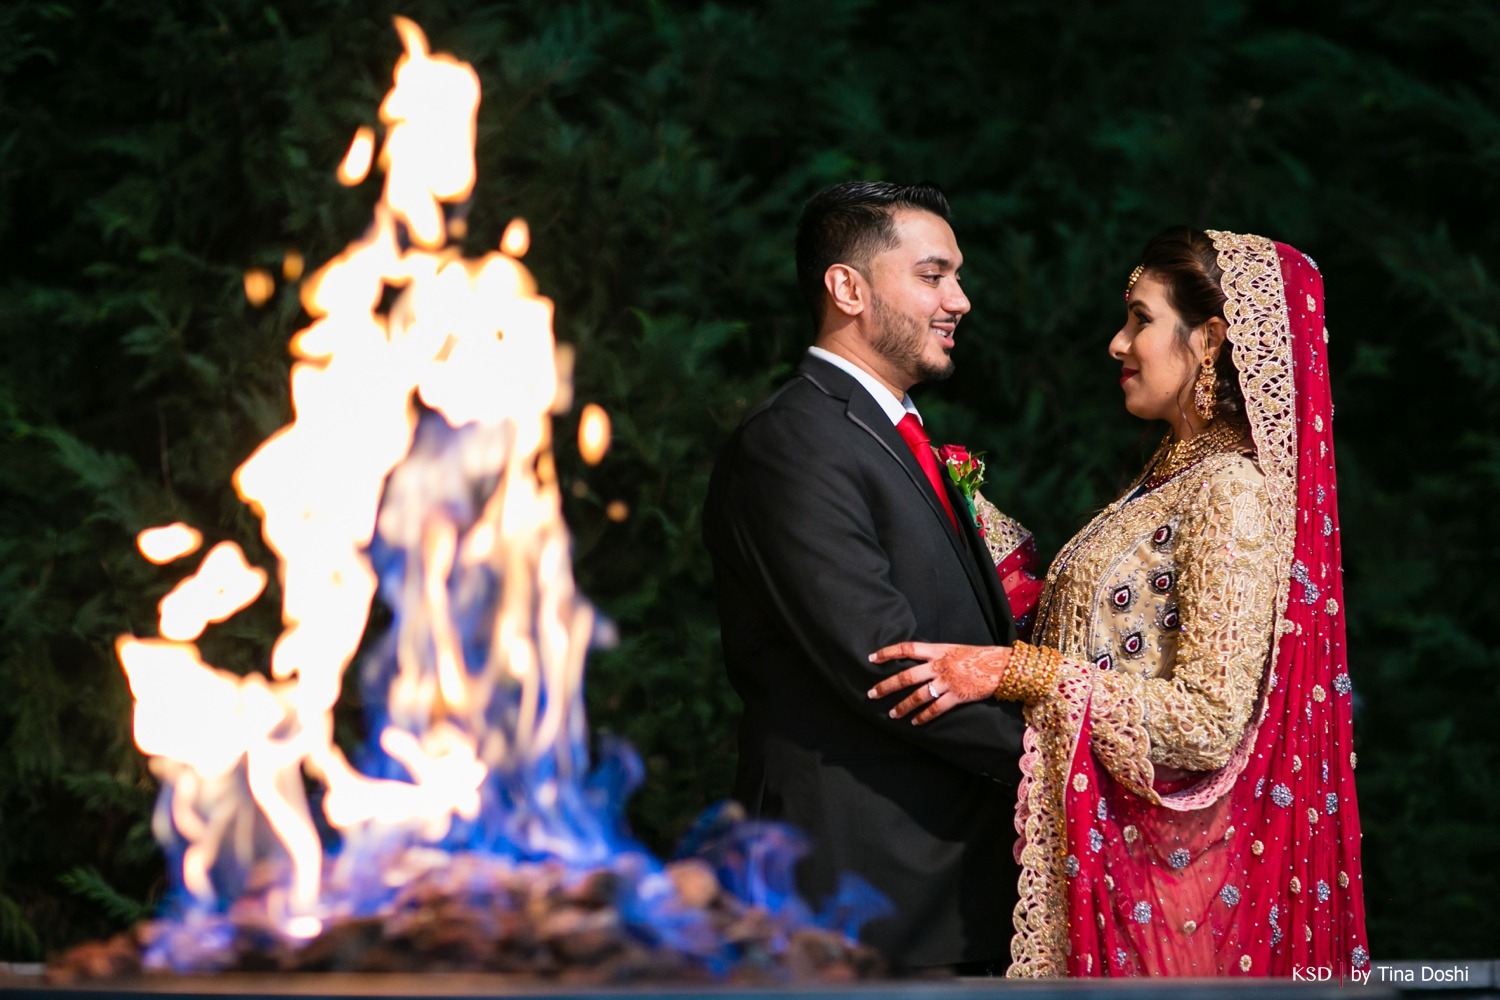 nj_south_asian_wedding_0081